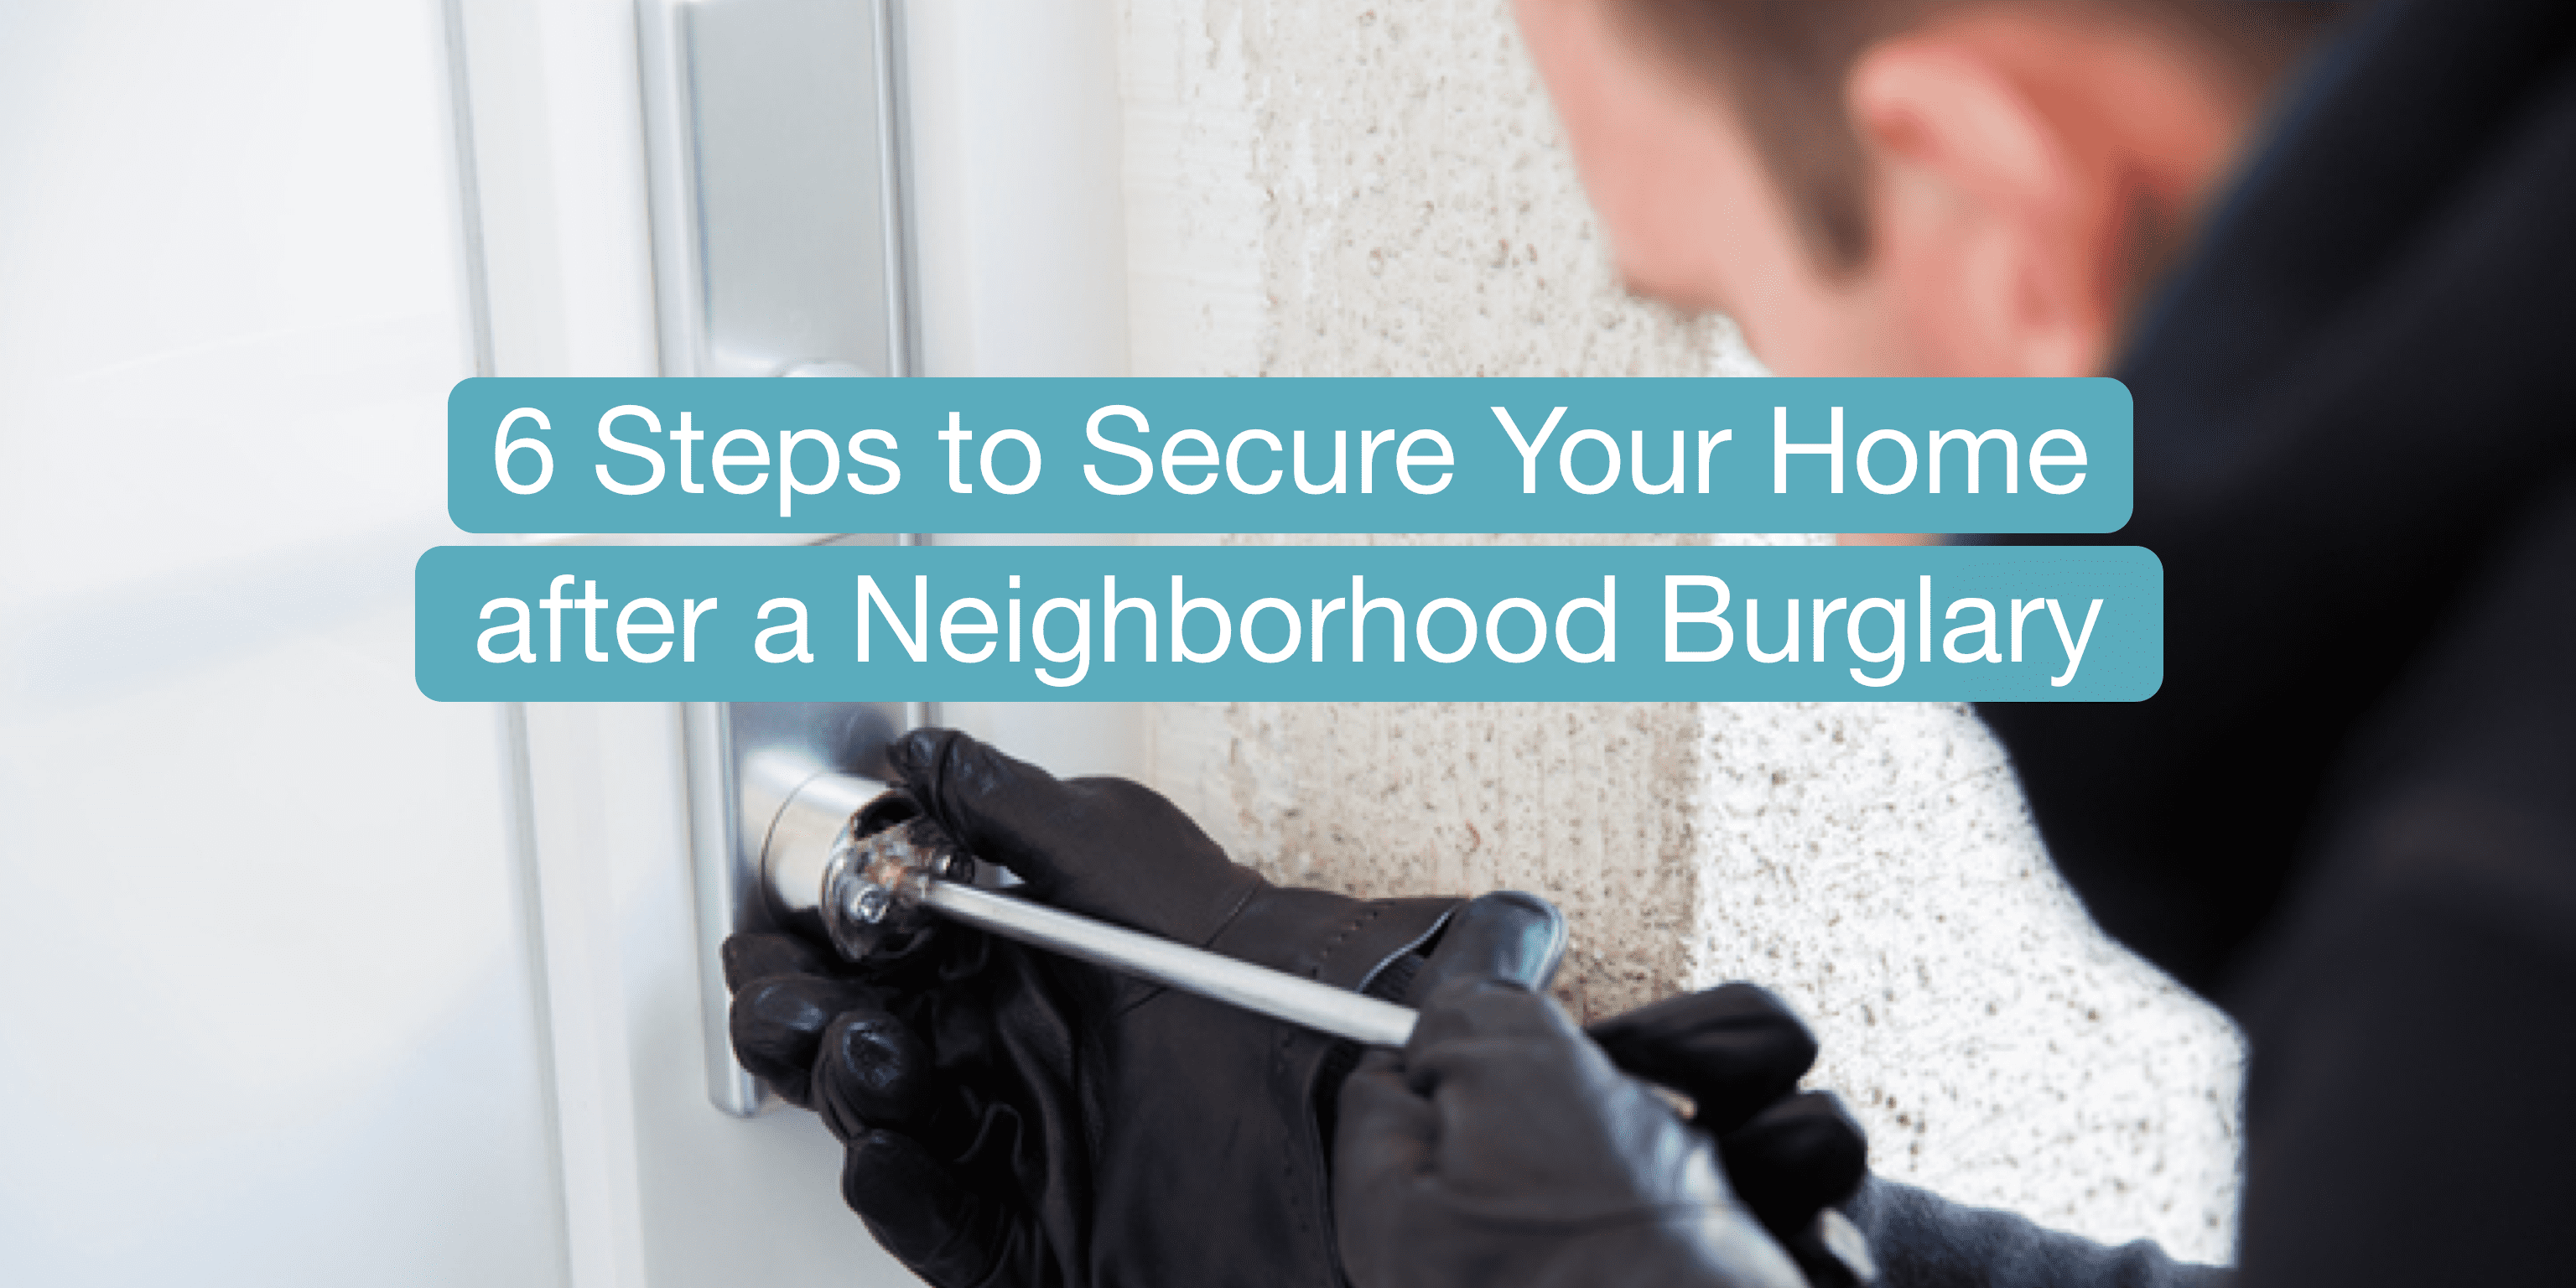 6 steps to secure your home after a neighborhood burglary